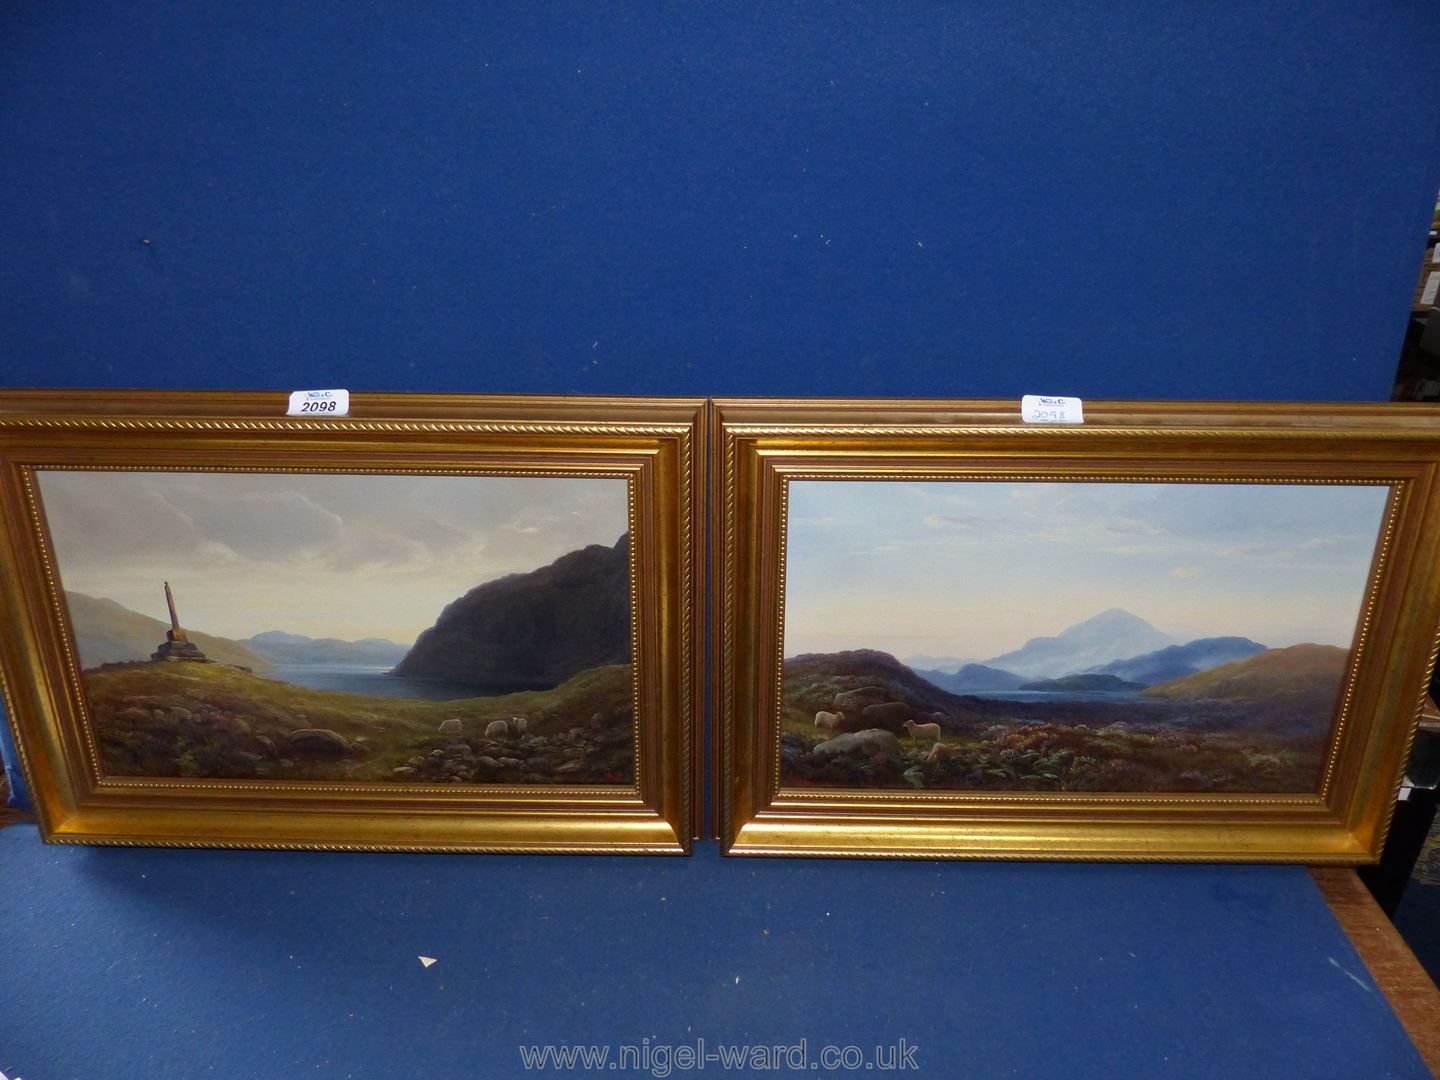 A pair of oils on canvas of Snowdonia landscapes by Thomas Finchett (1858 - 1931) : 'Moel Siabod